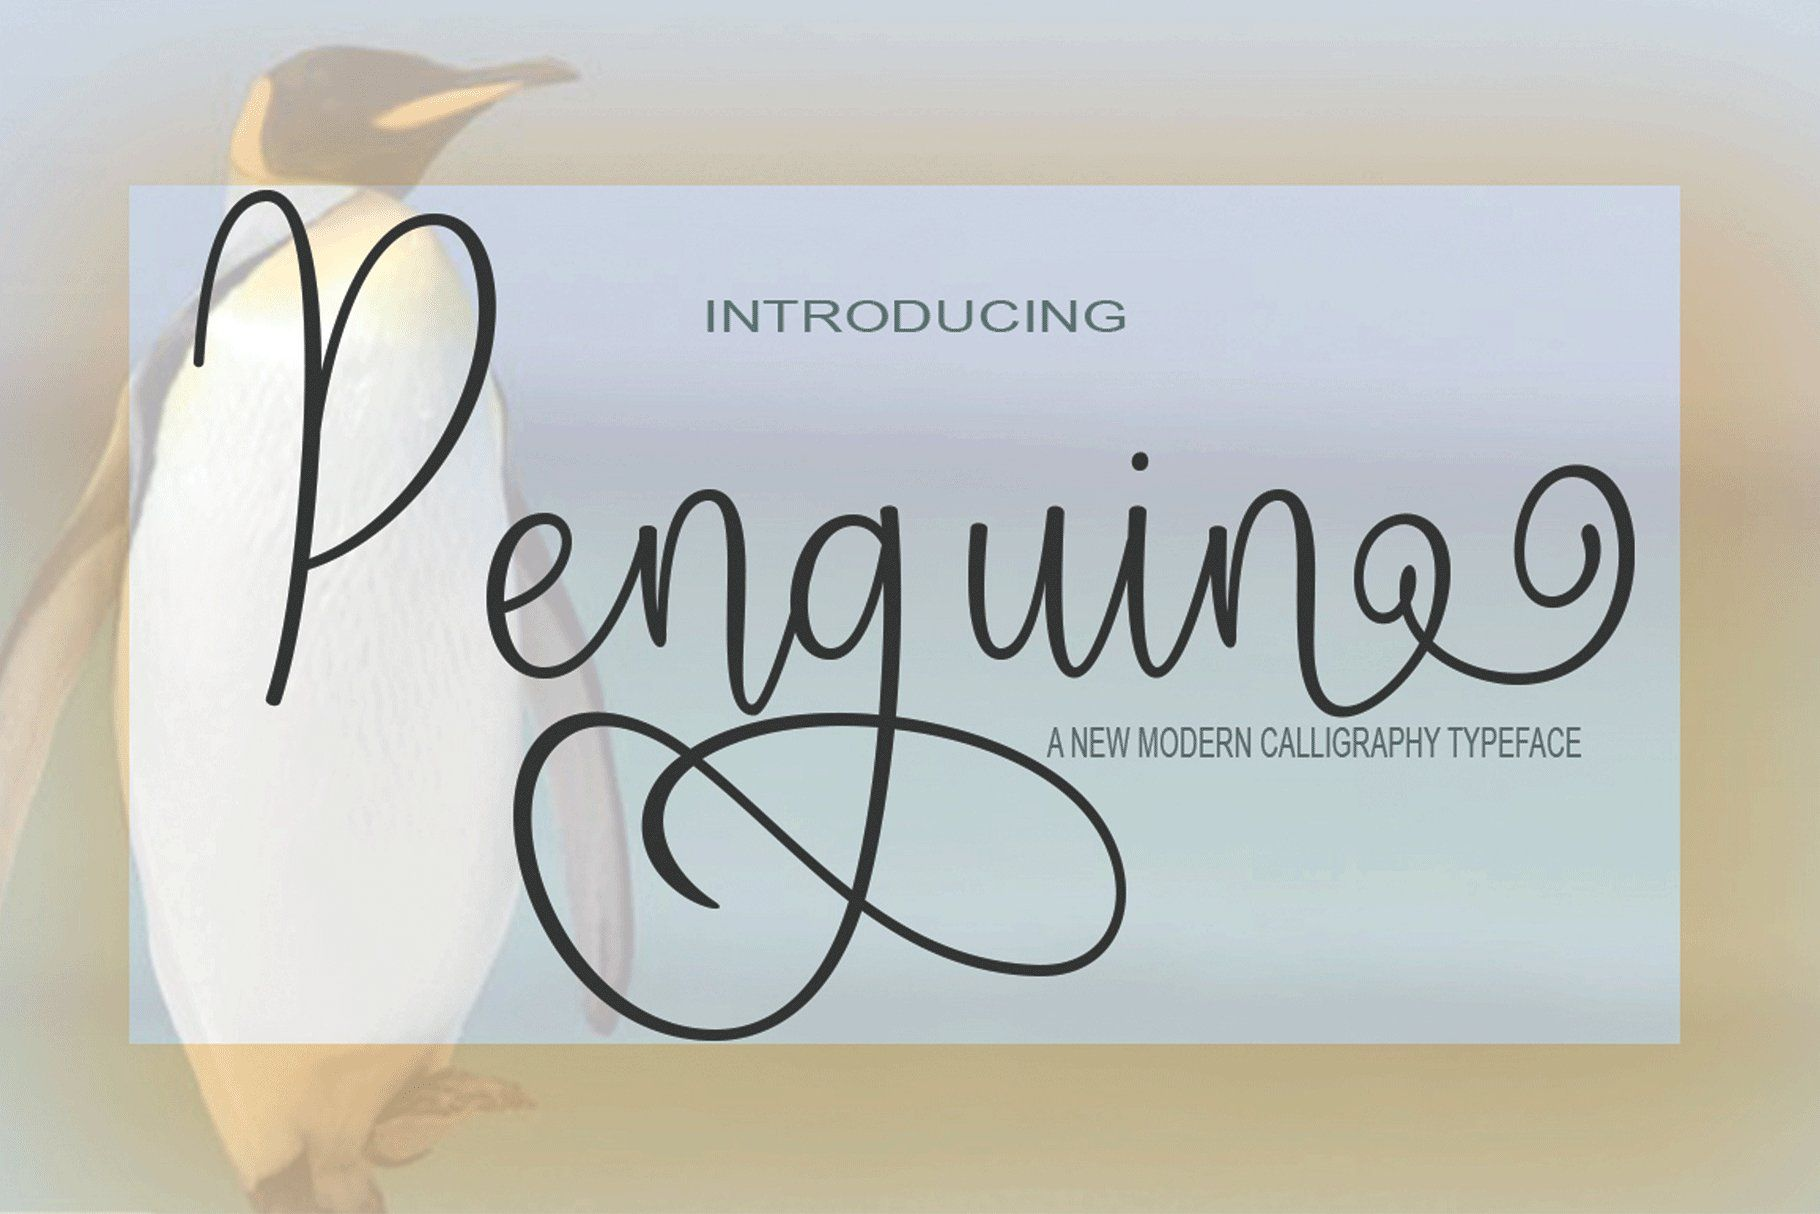 Penguin Script Buy Now $13 - Handwritten Fonts, Alphabet Fonts, Free Fonts, Script Fonts, Modern Fonts, Cursive Fonts, Design Fonts, Rustic Fonts, Calligraphy Fonts, Simple Fonts, Typography, Serif Fonts, Elegant Fonts, Professional Fonts, Beautiful Fonts https://avemateiu.com/fonts/